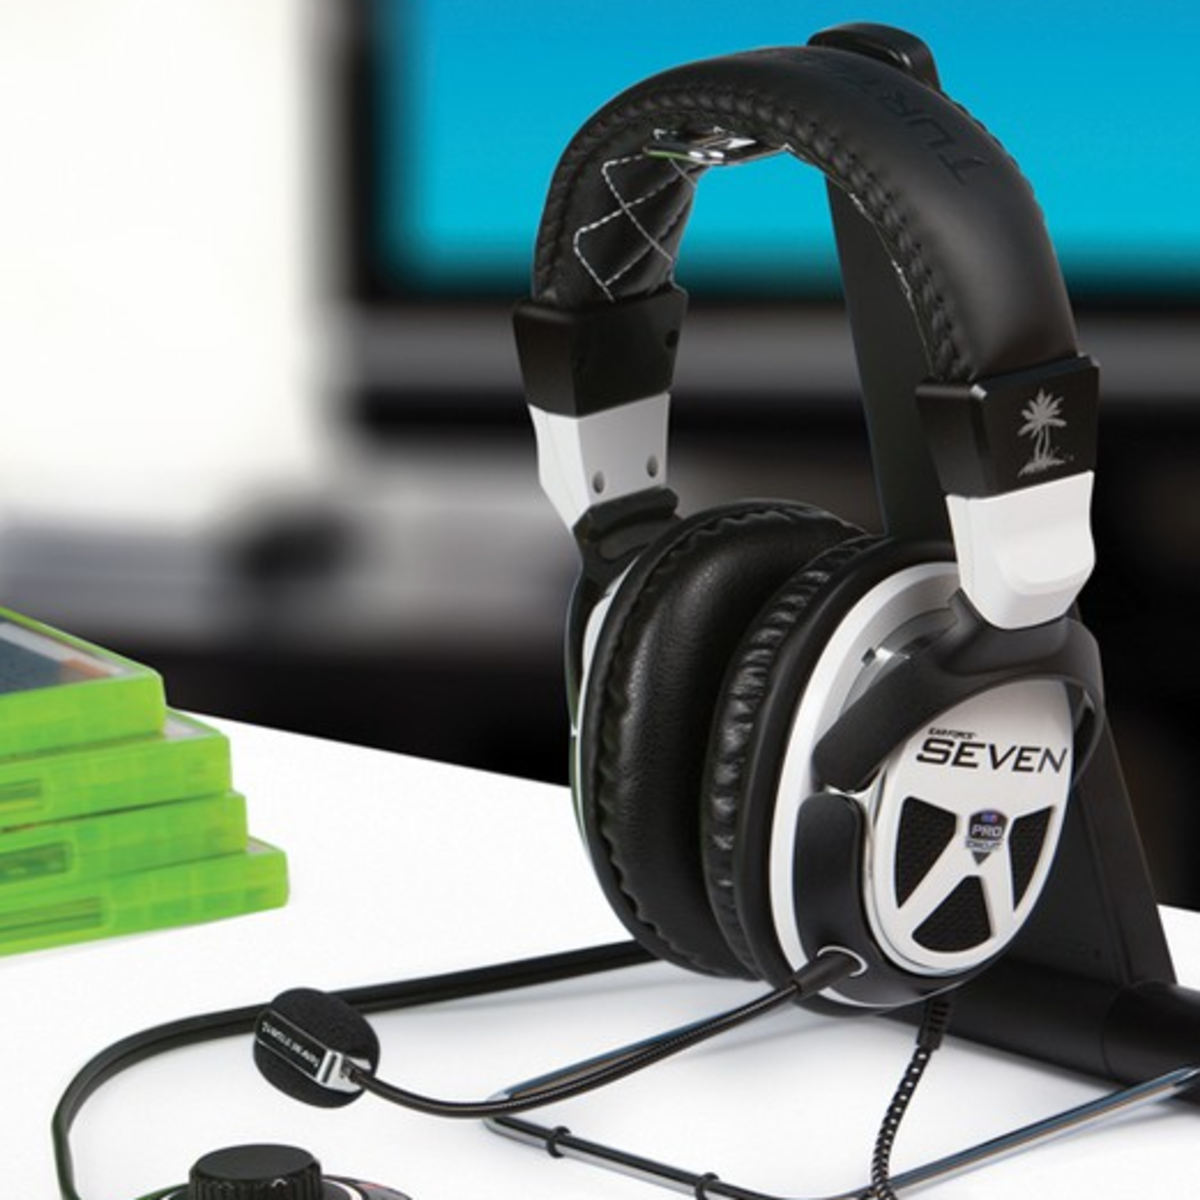 The Ear Force XP Seven is now the official MLG headset. But, how does it stack up against other headset and headphone options?